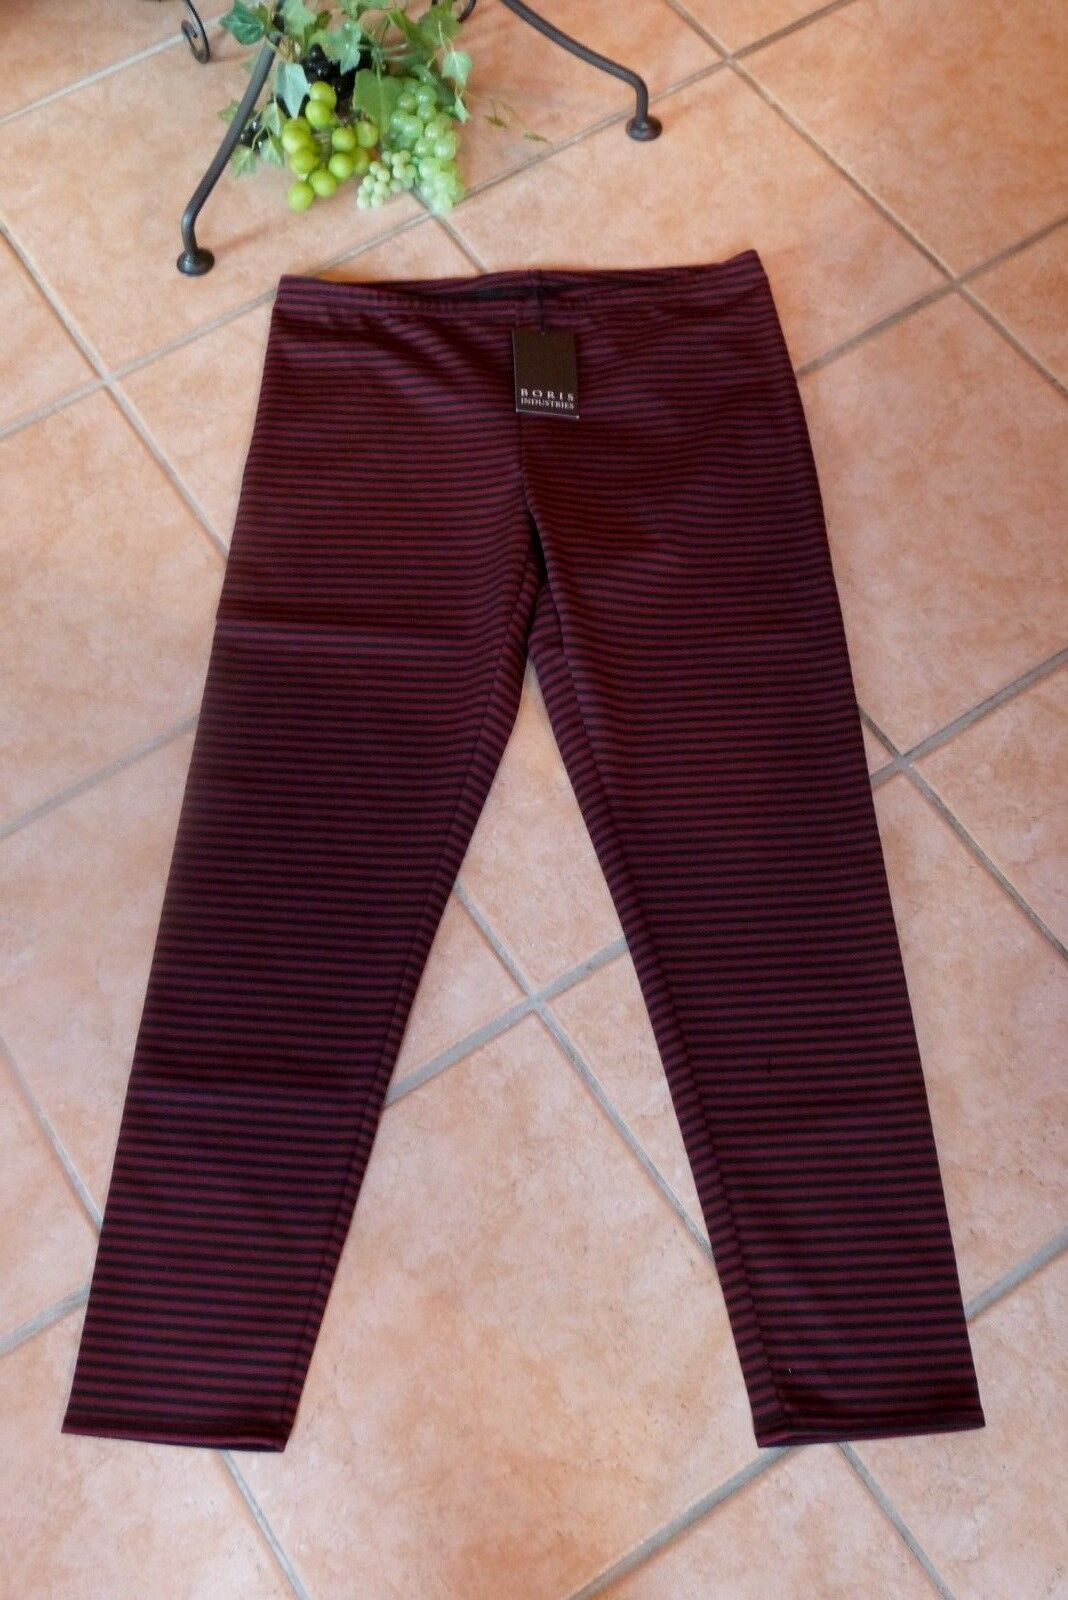 BORIS INDUSTRIES Leggings 46 68 (4) NEU bordeaux Streifen Double Face LAGENLOOK